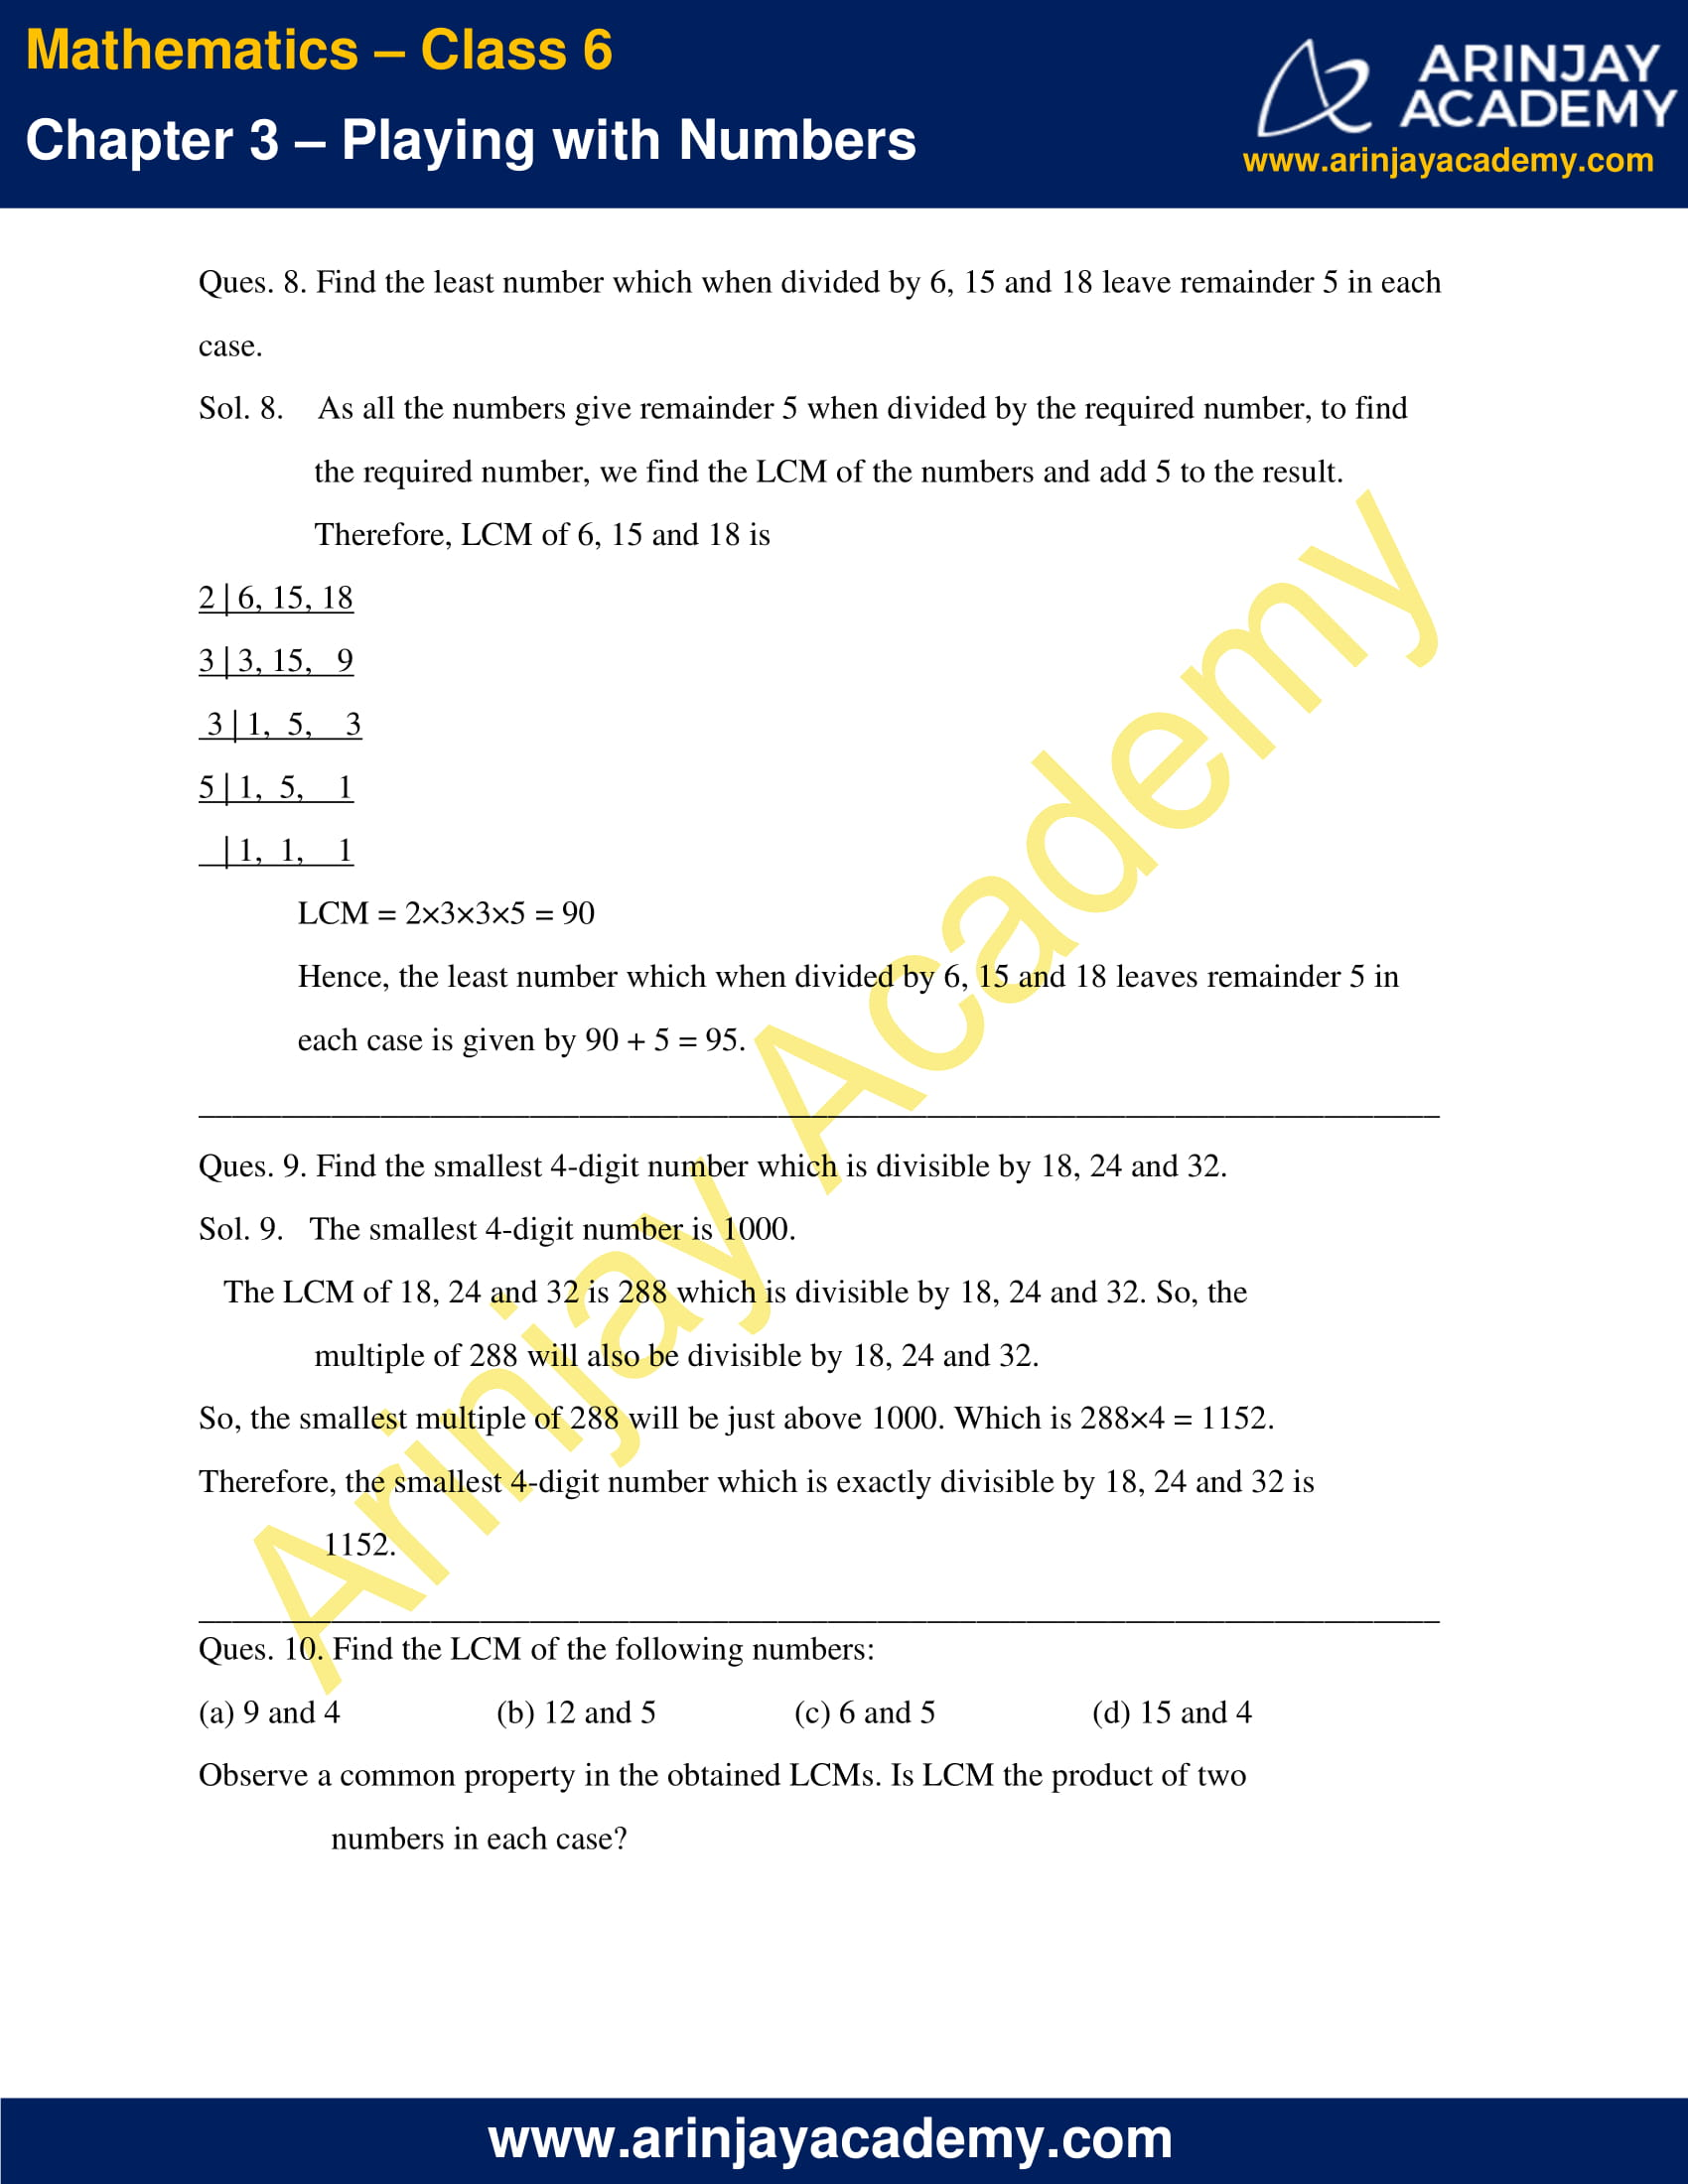 NCERT Solutions for Class 6 Maths Chapter 3 Exercise 3.7 image 4